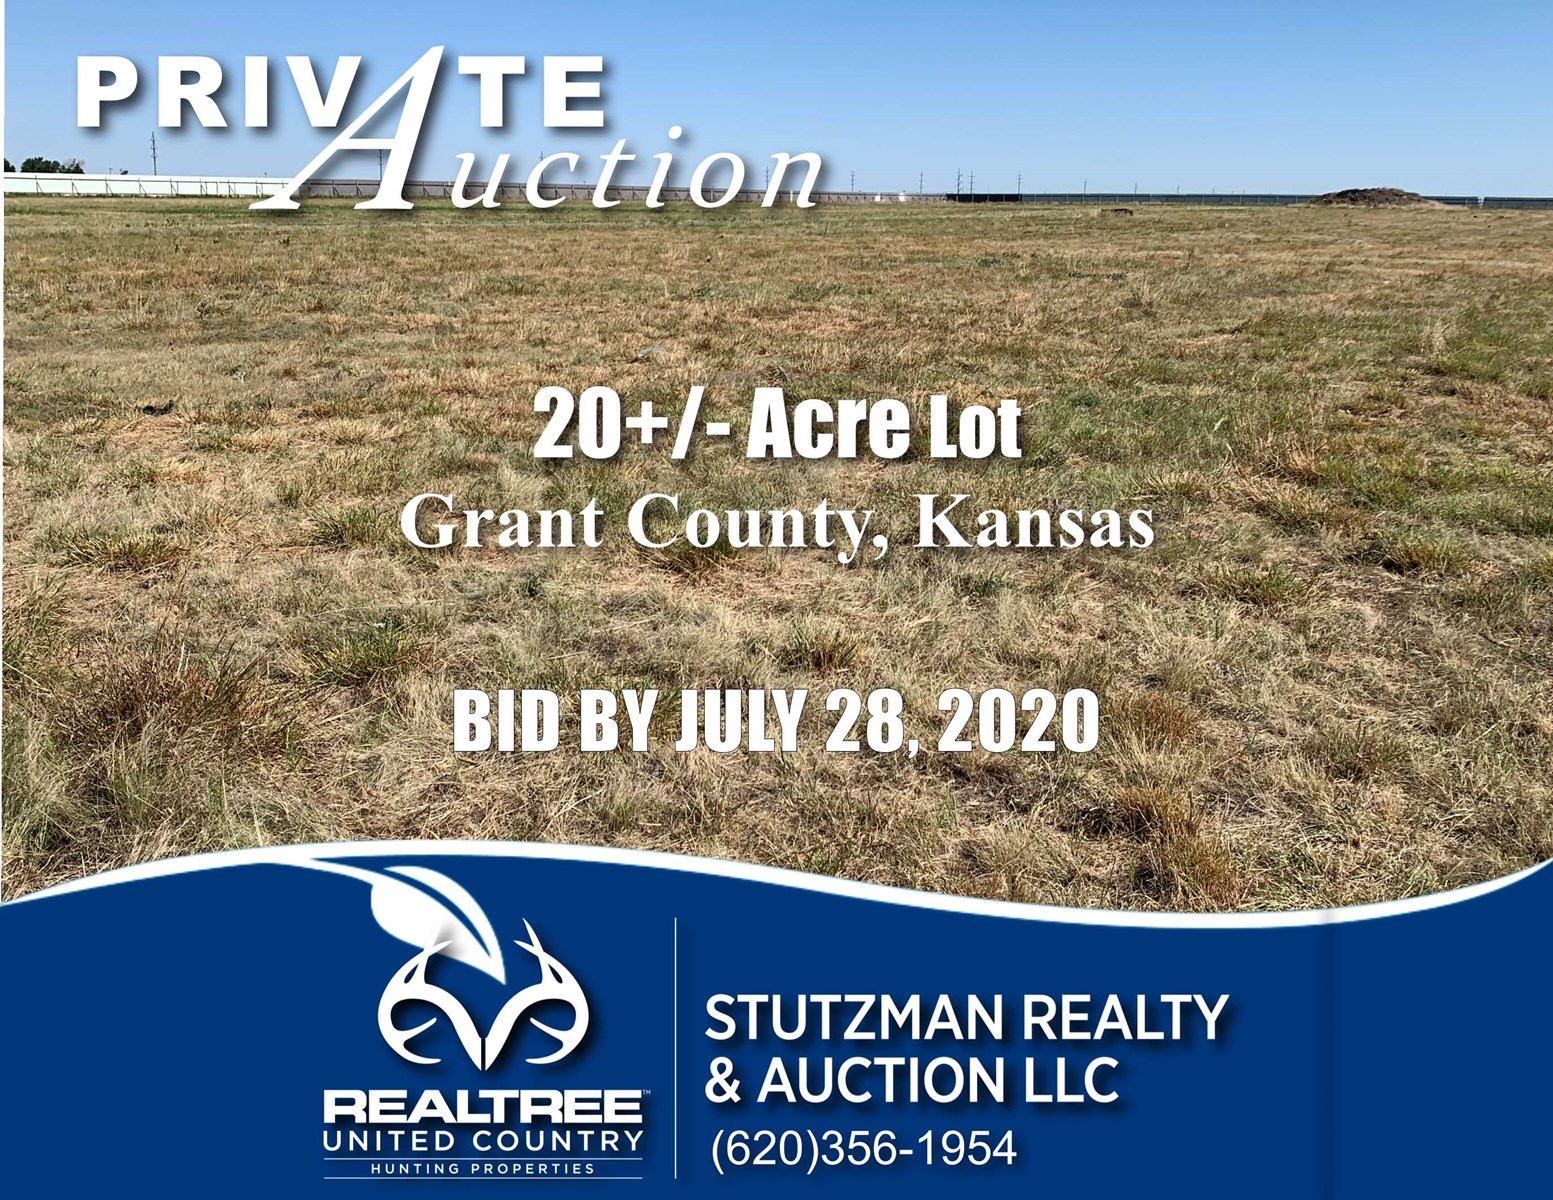 GRANT COUNTY KS ~ 20 ACRES with SHOP ~ PRIVATE AUCTION